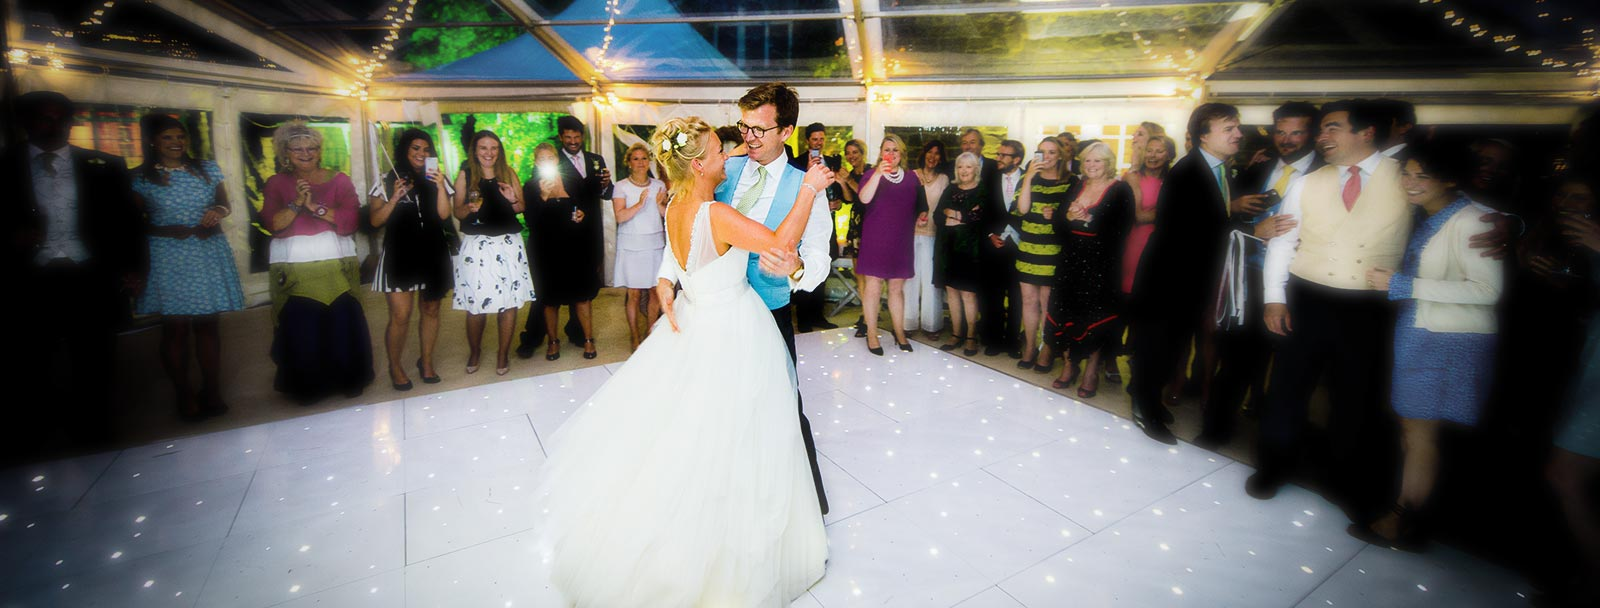 bride and husband dancing on marquee dancefloor